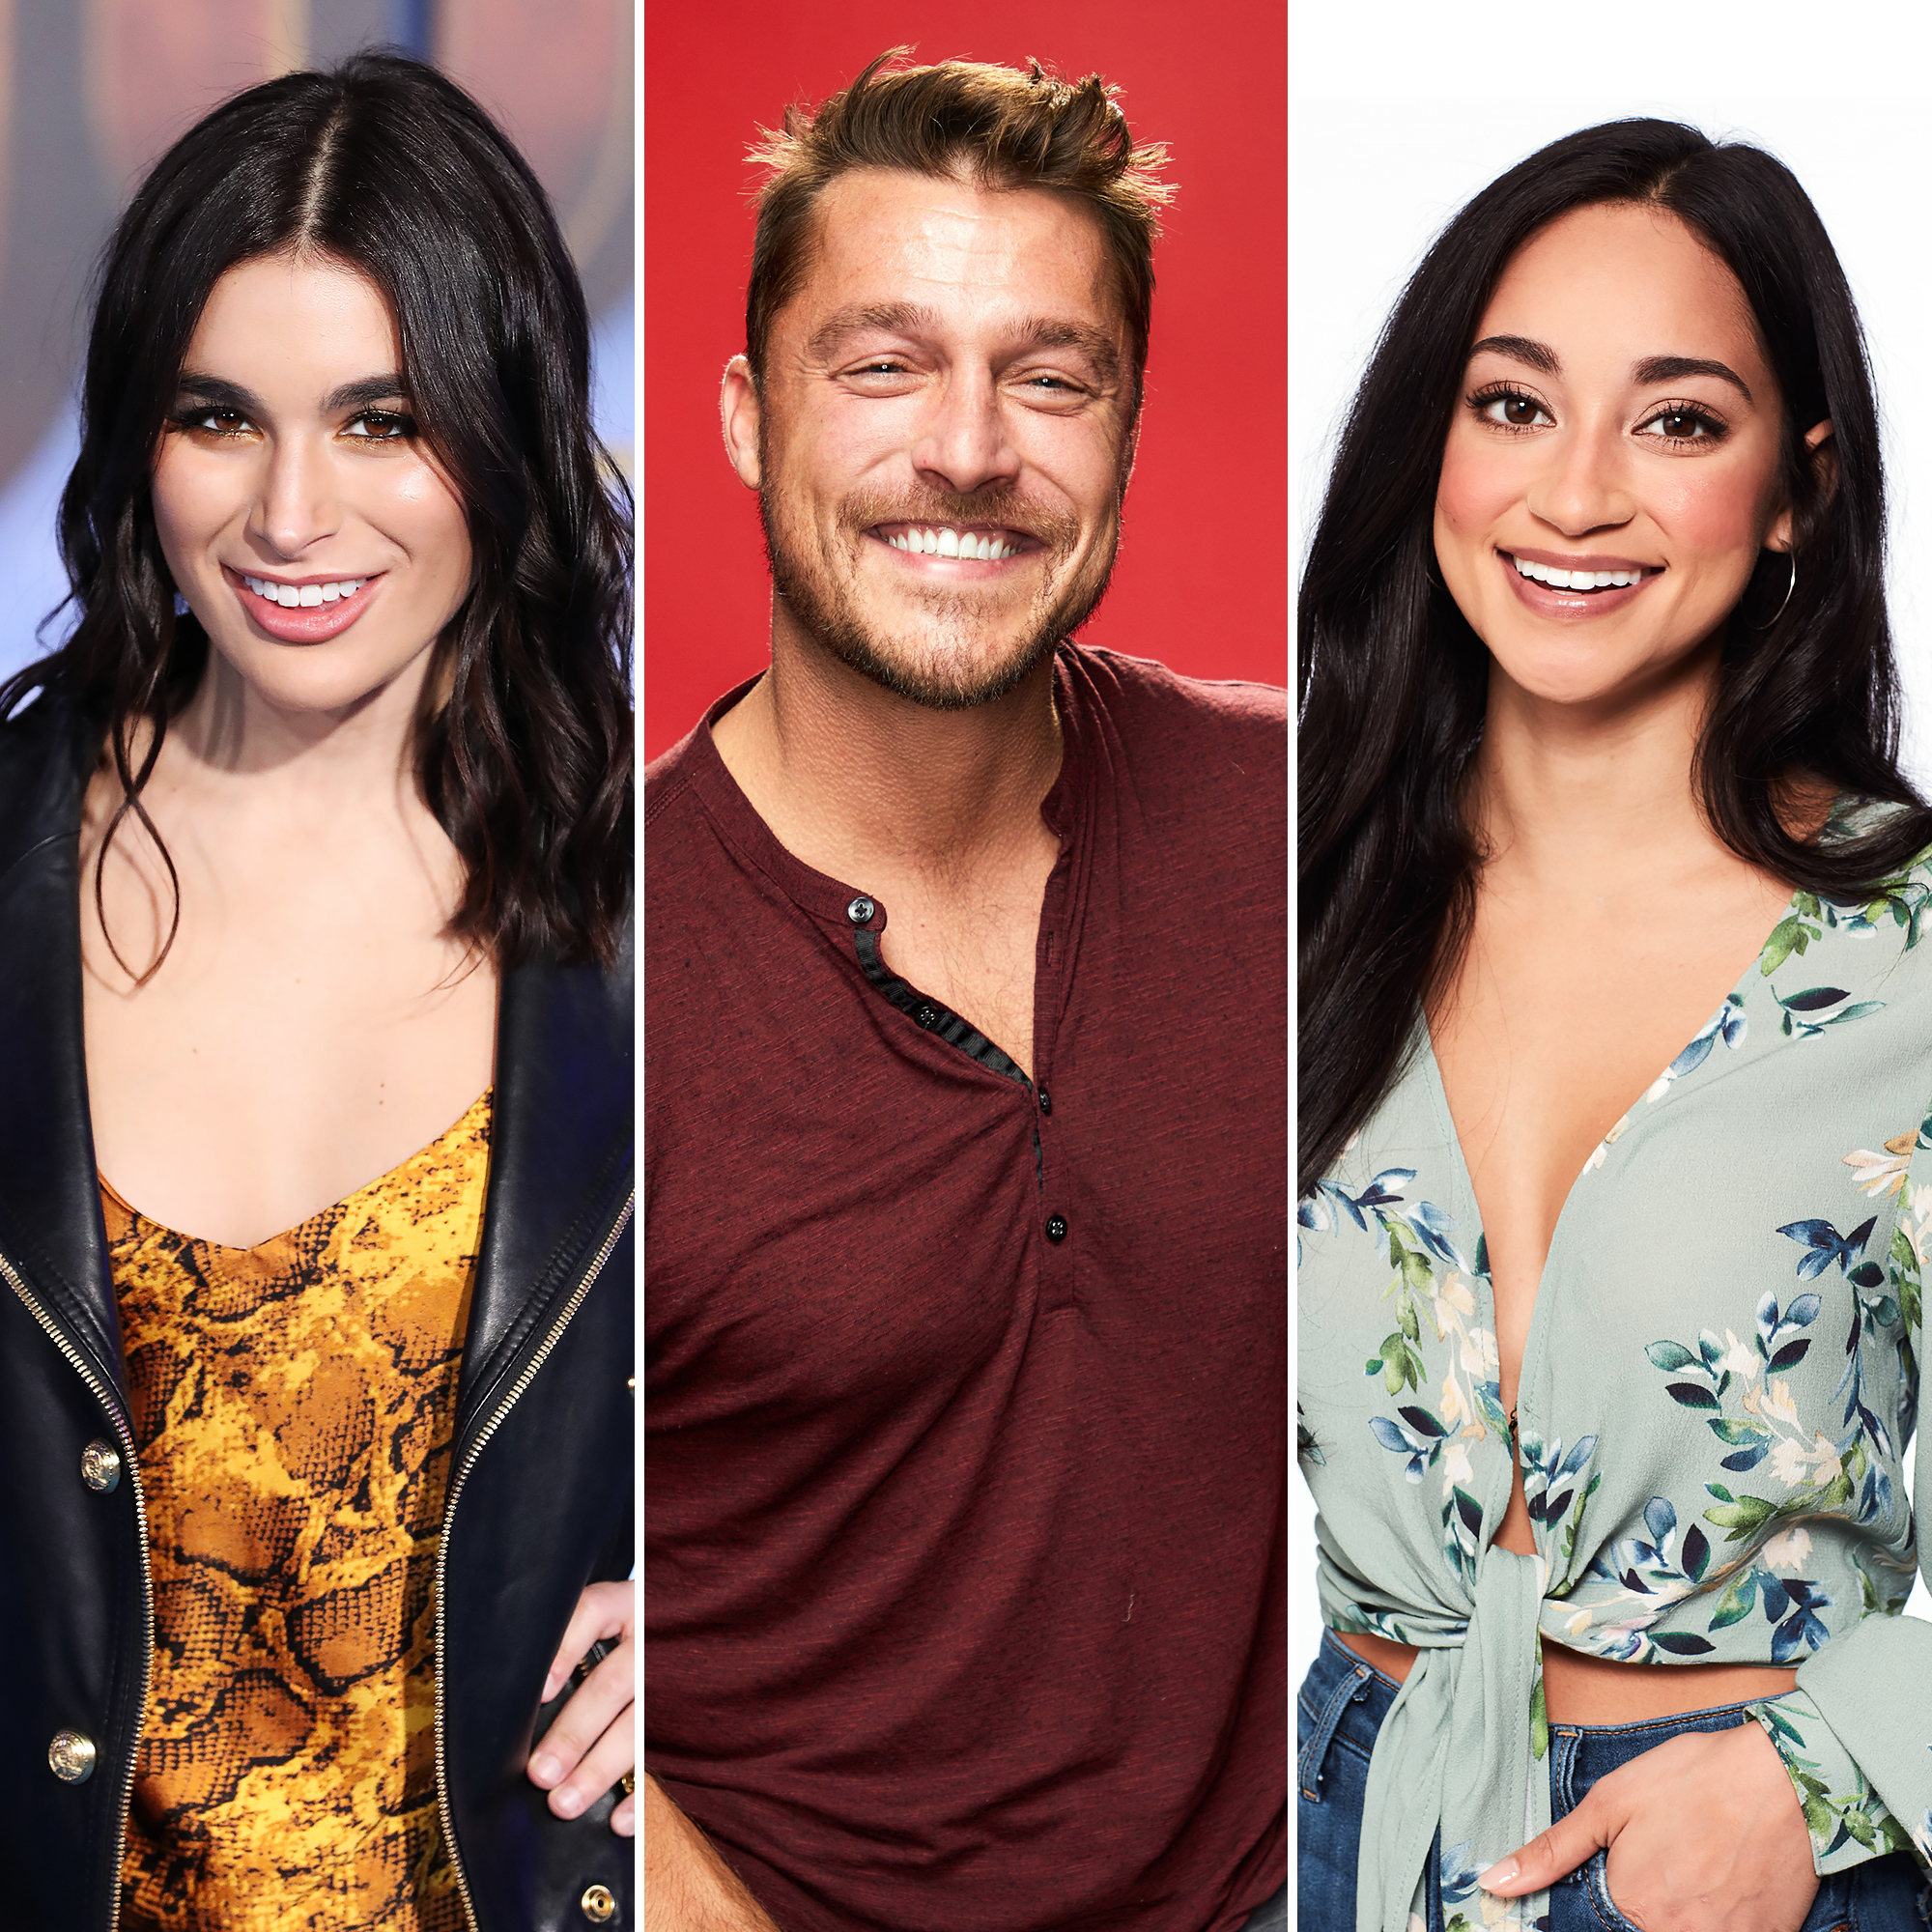 Ashley Iaconetti Wants to Double Date With Ex Chris Soules Victoria Fuller